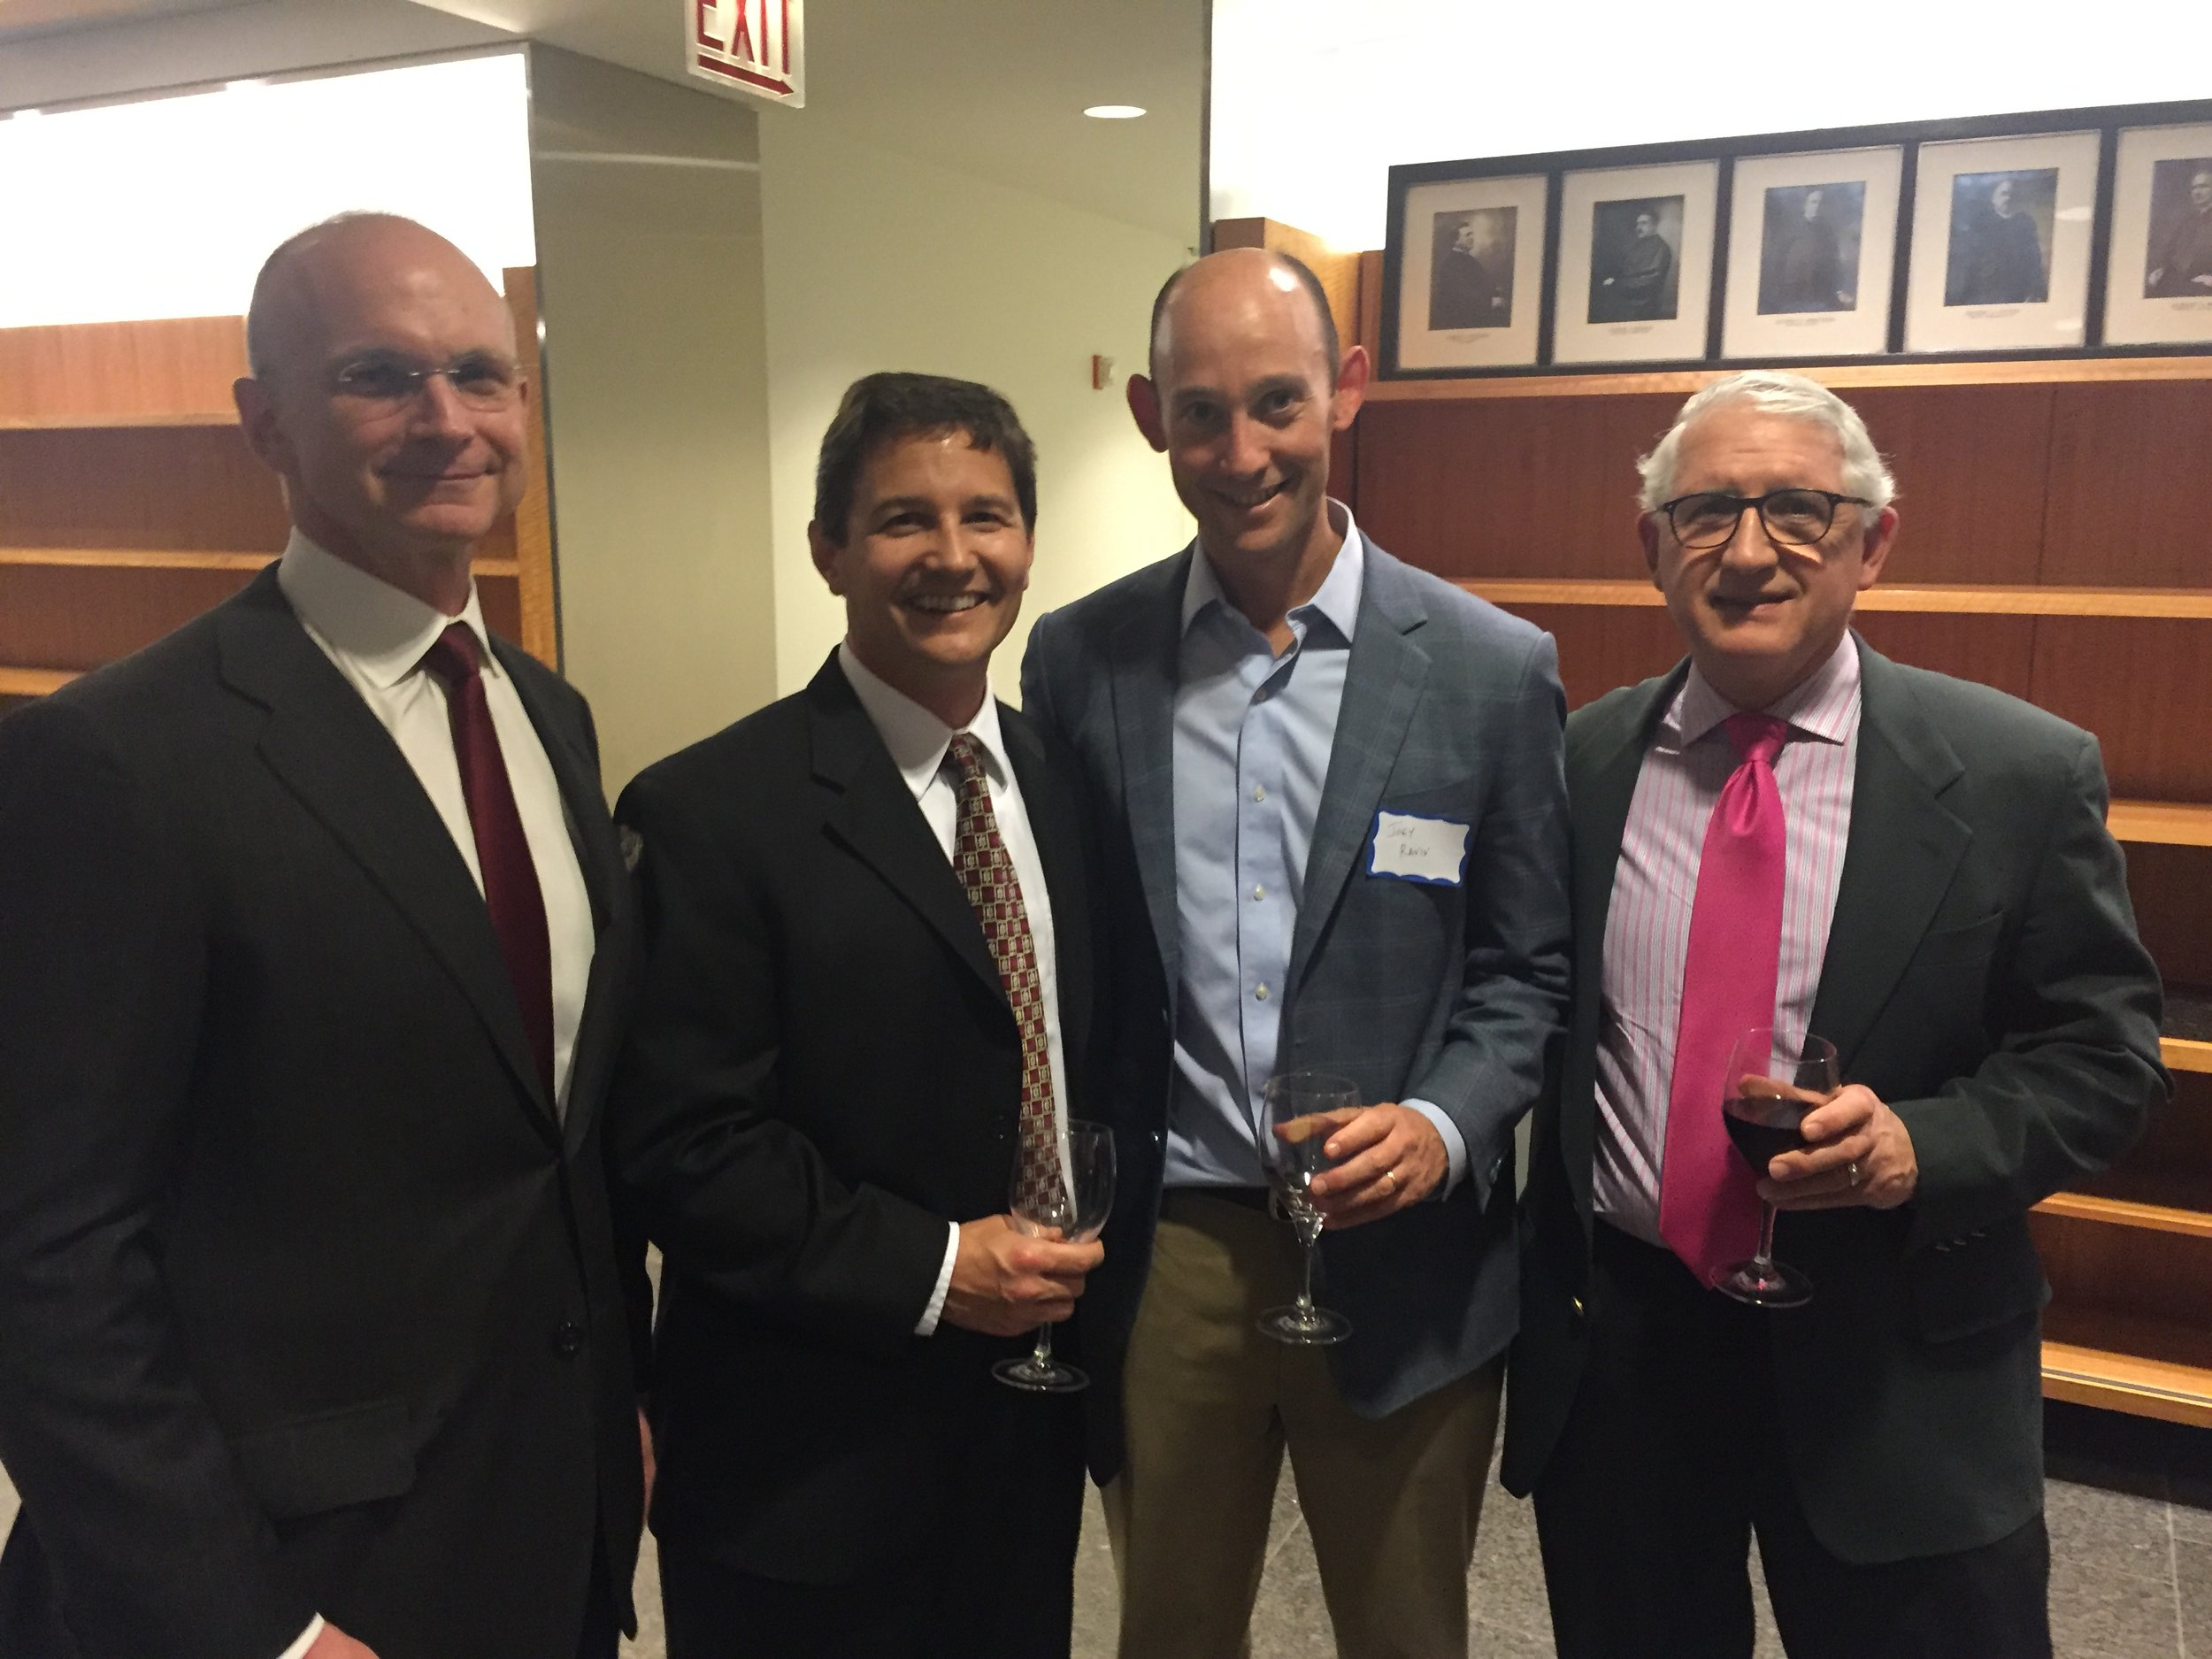 From the November 17th meeting: Guest speaker Dr. Rodney Schlosser (2nd from left) with CL&O members Dr. Robert Kern (Northwestern), Dr. Joseph Raviv (Northshore), and Dr. James Stankiewicz (Loyola)